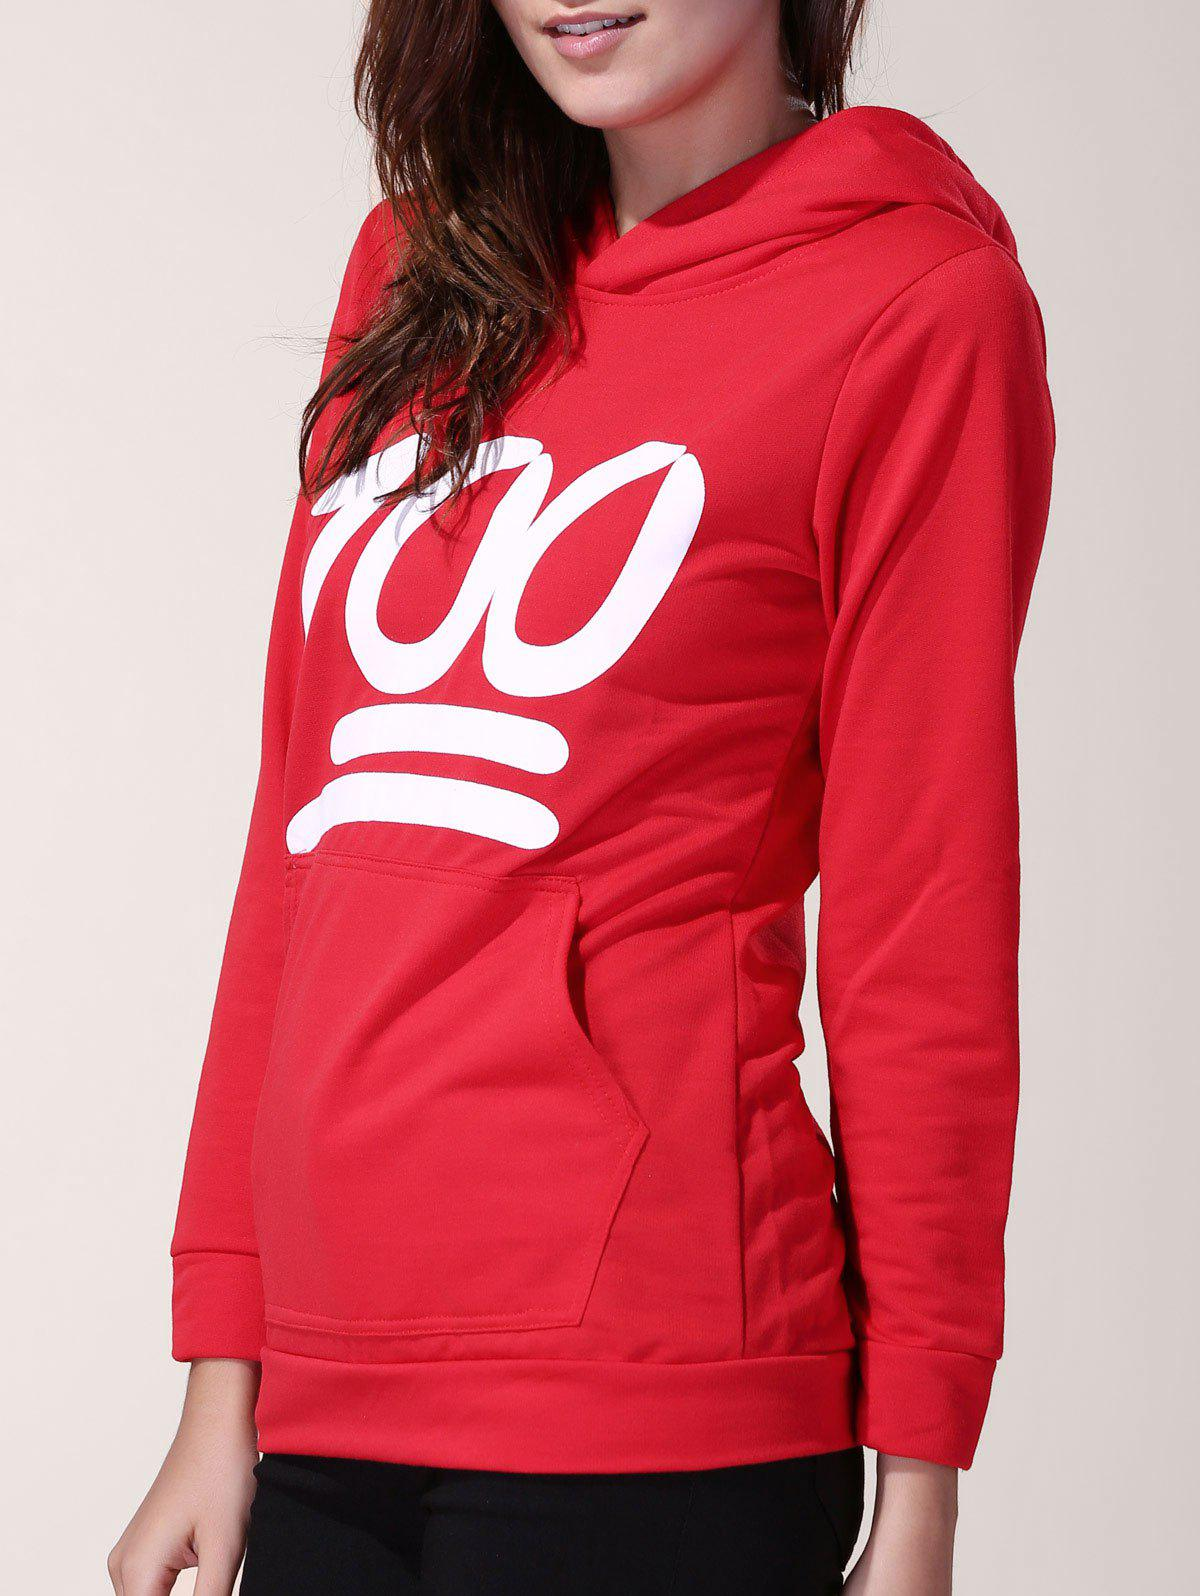 Stylish Long Sleeve Hooded Number 100 Print Women's Hoodie - RED S